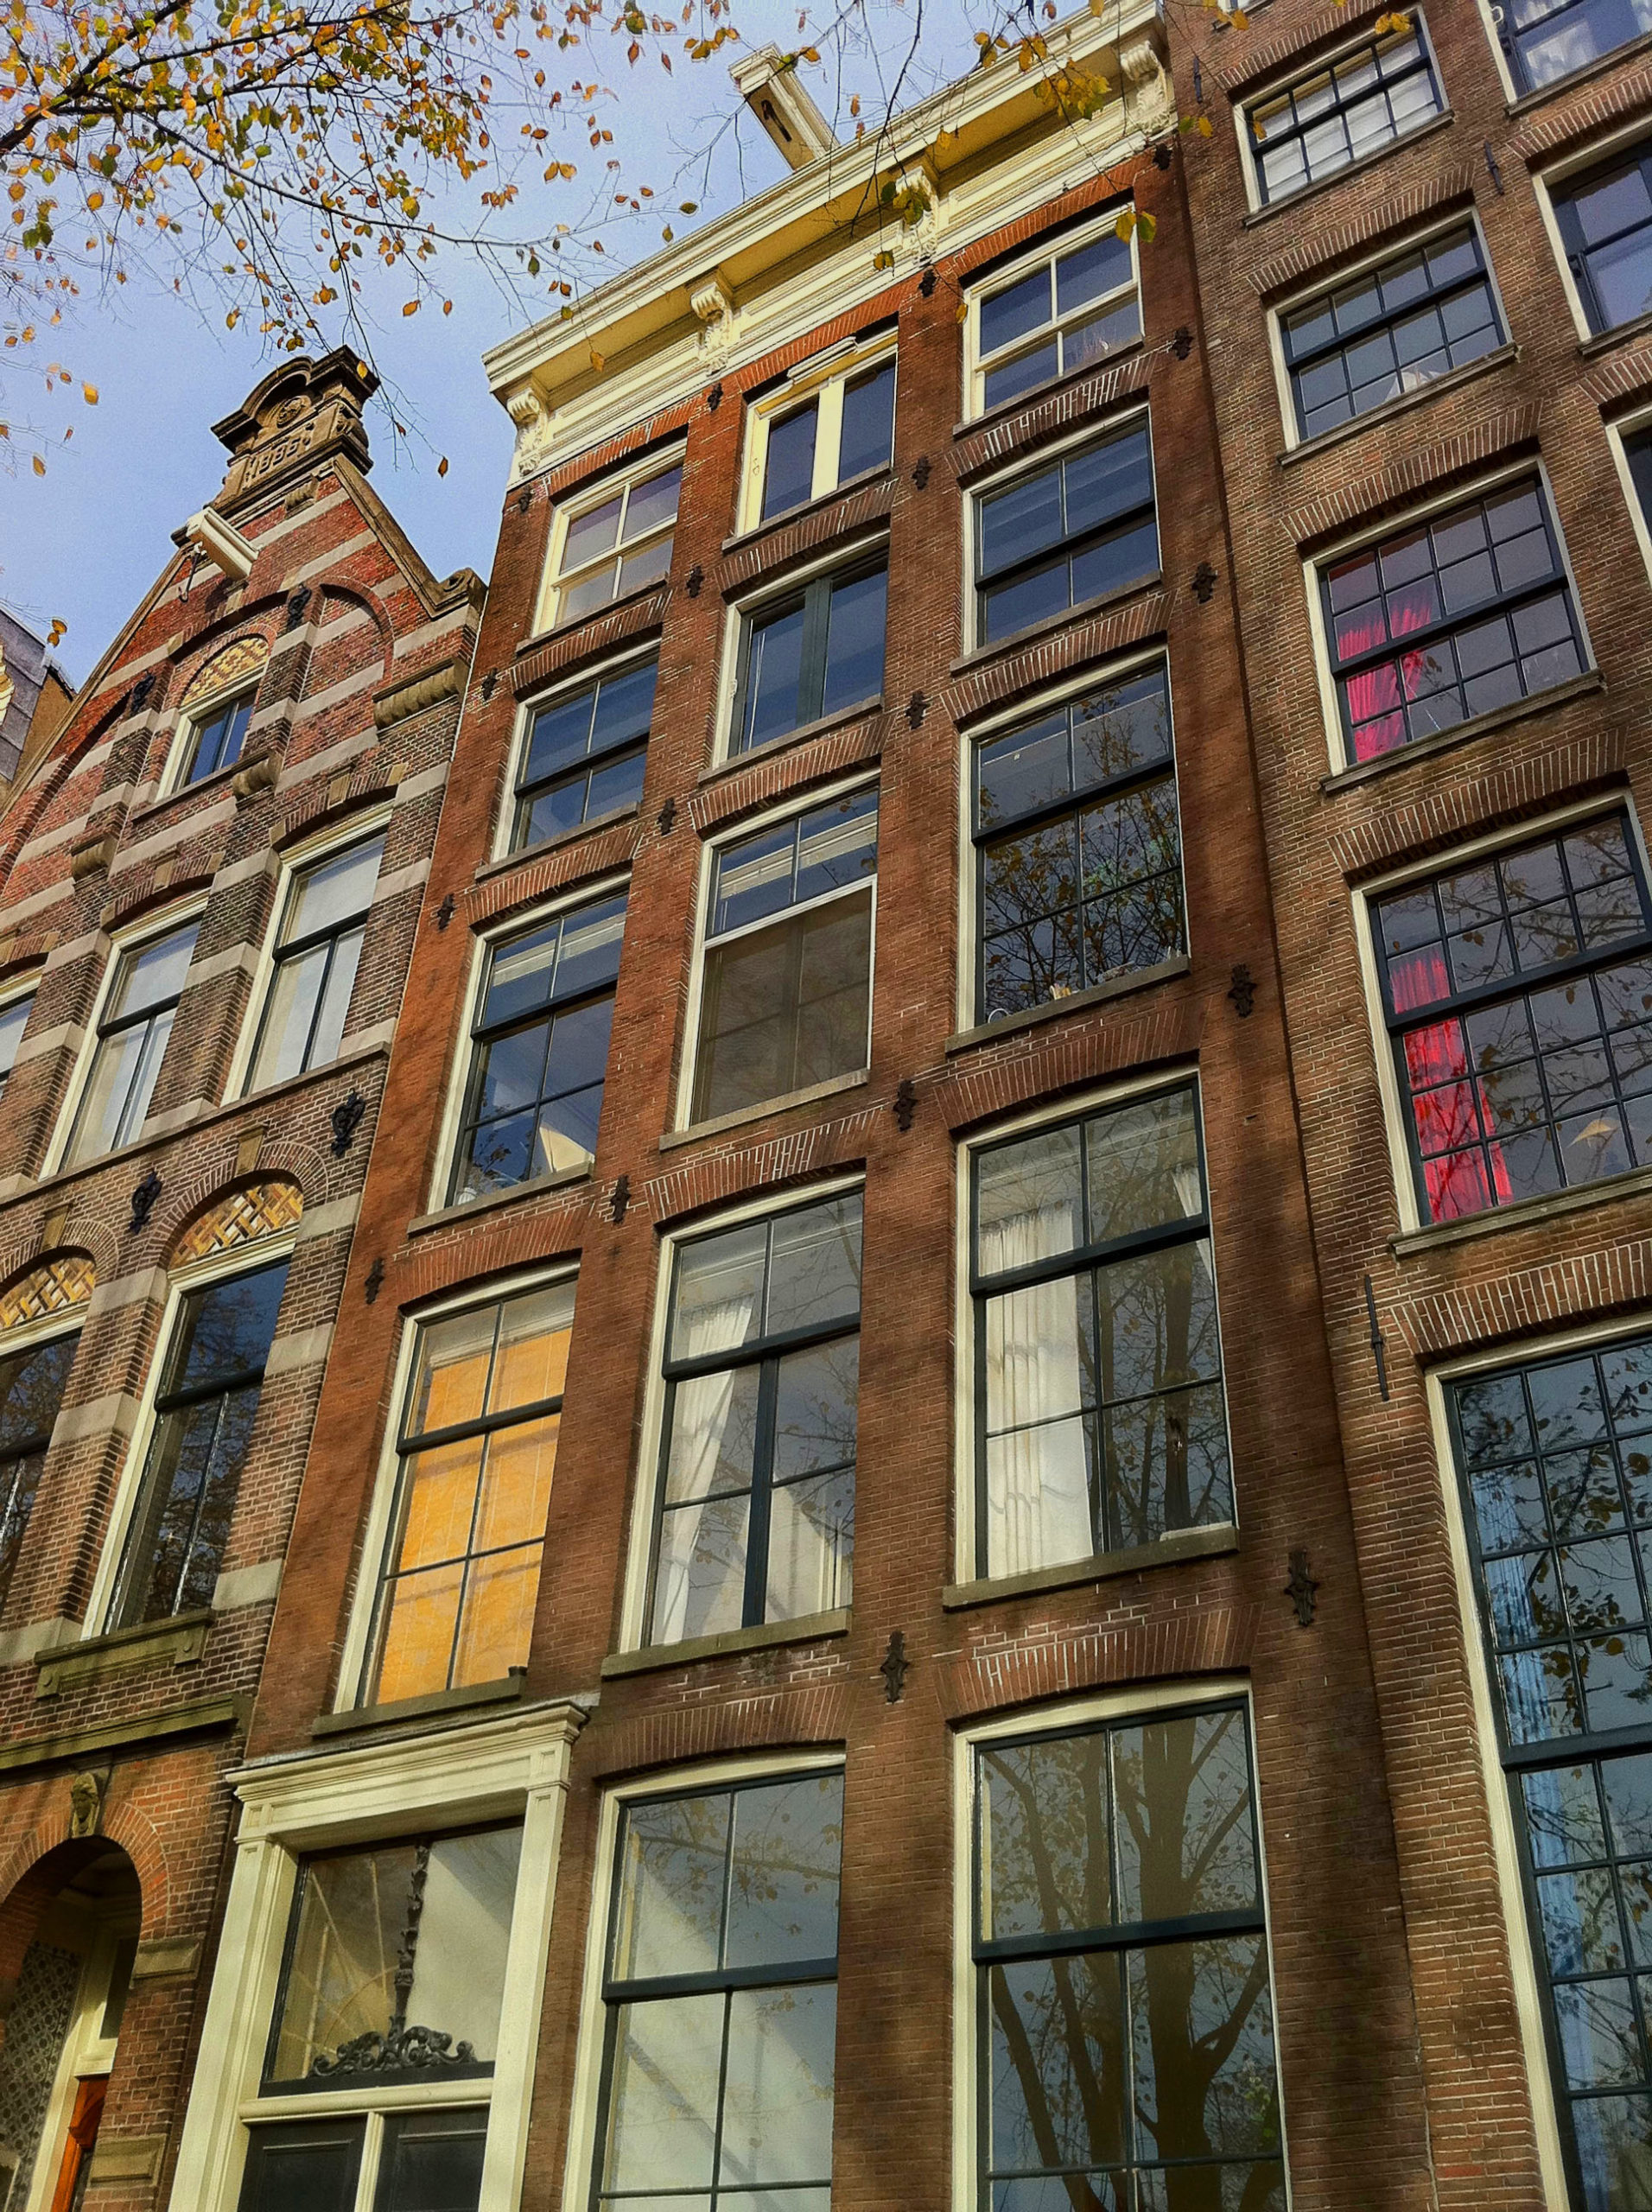 Amsterdam canal house exterior